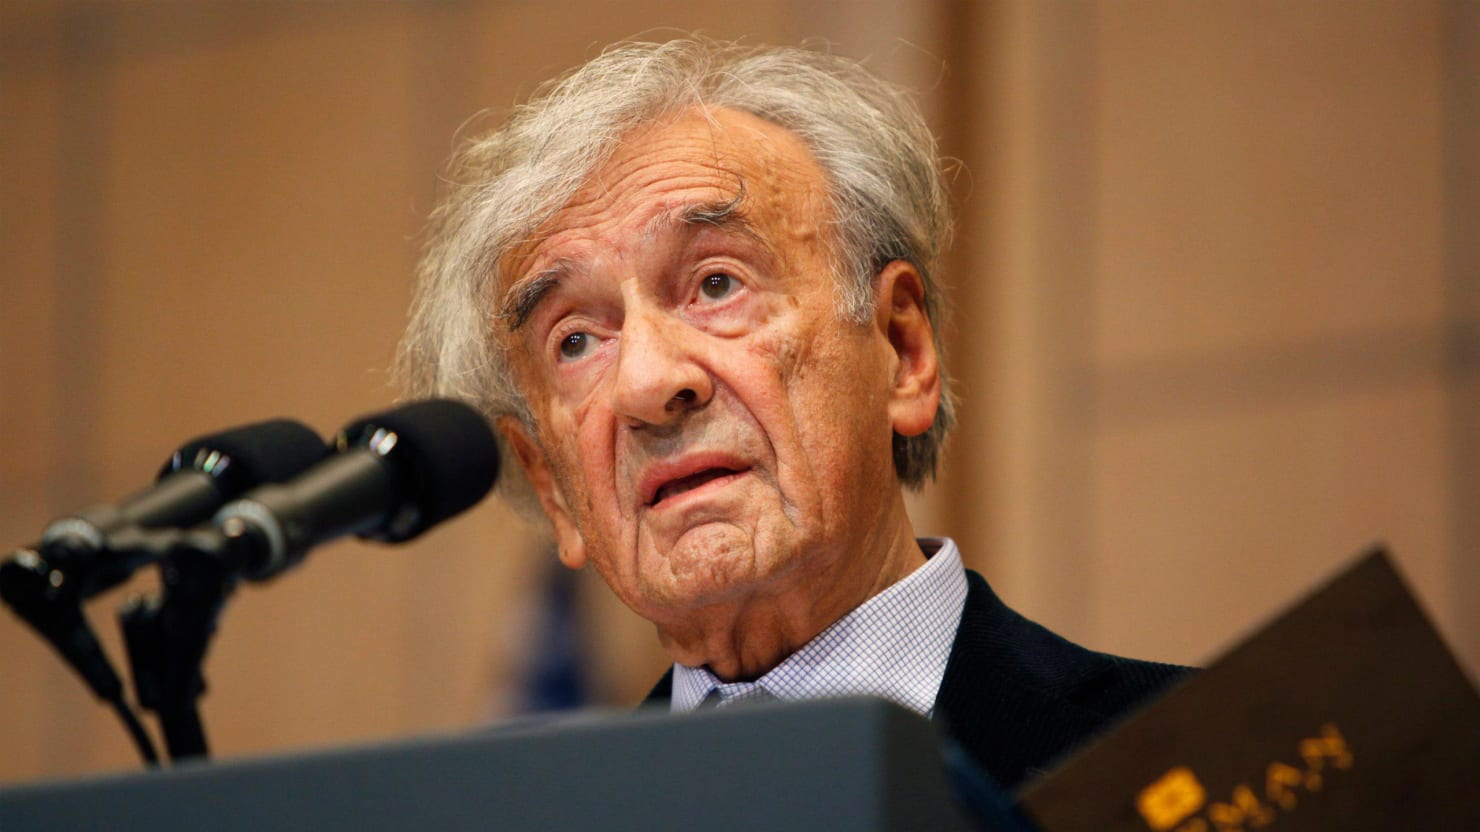 Elie Wiesel on His Fear of Being the Last Holocaust Witness